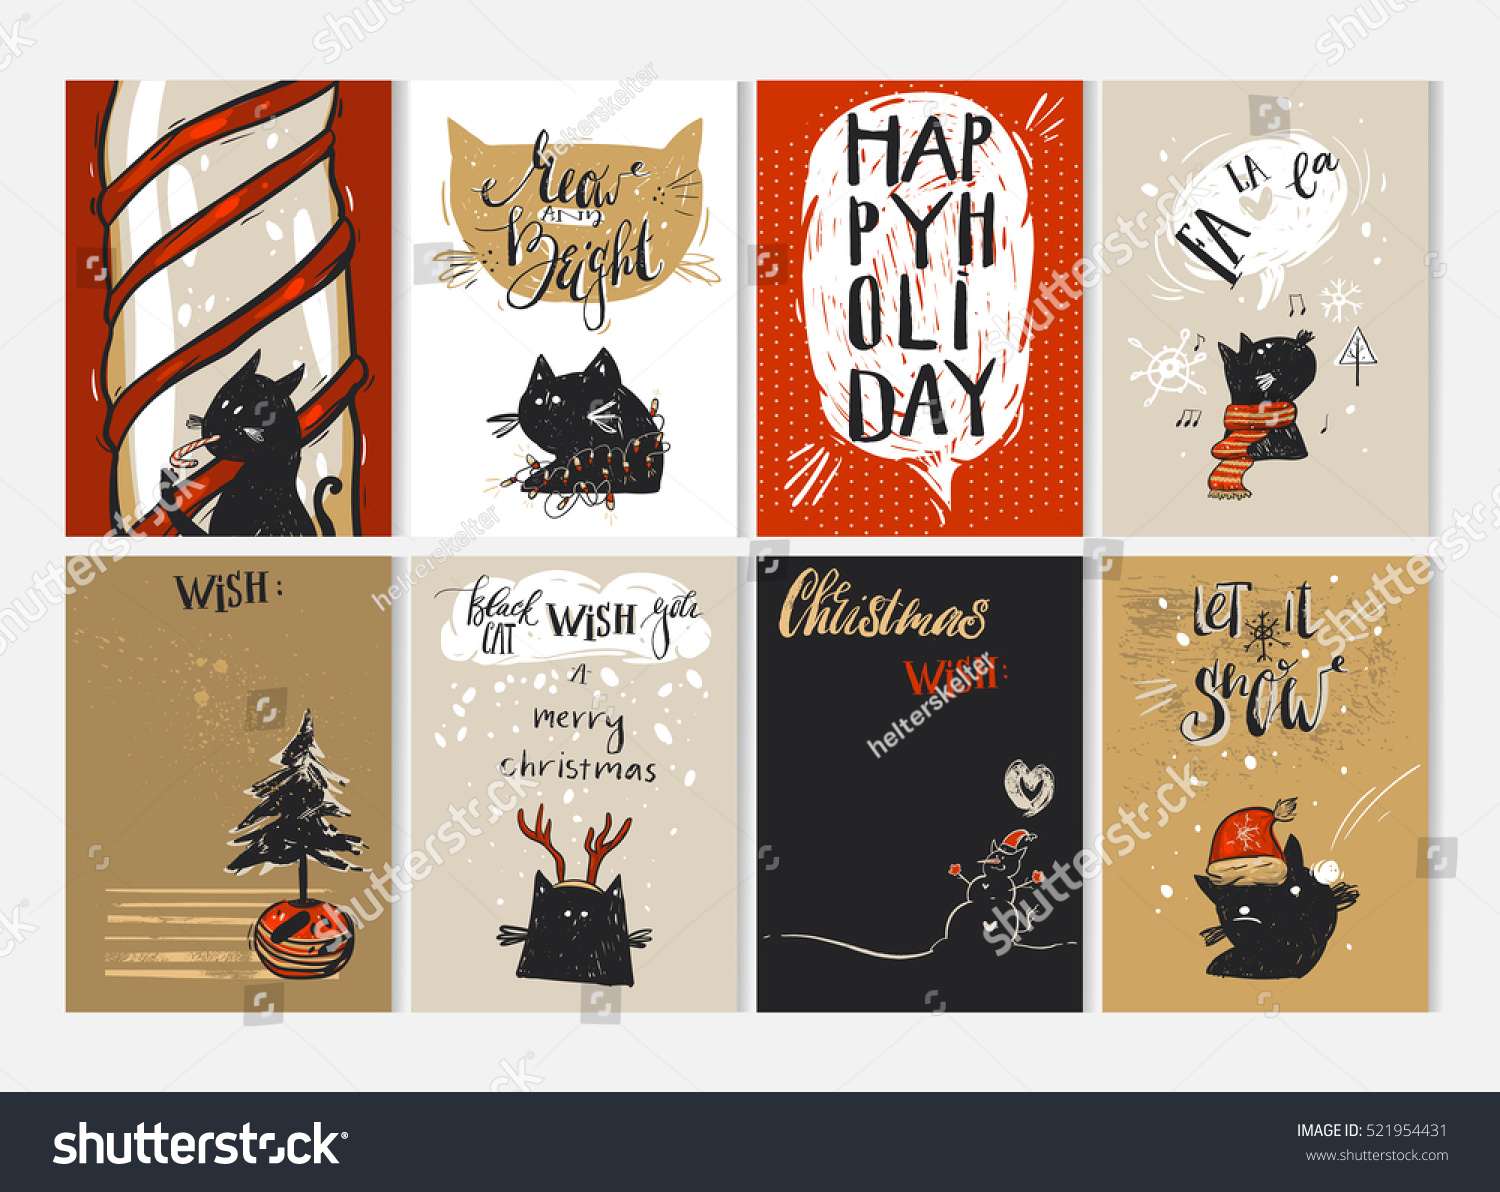 Hand Drawn Vector Merry Christmas Greeting Card Set With Cute Funny Black  Cats Characters In Winter